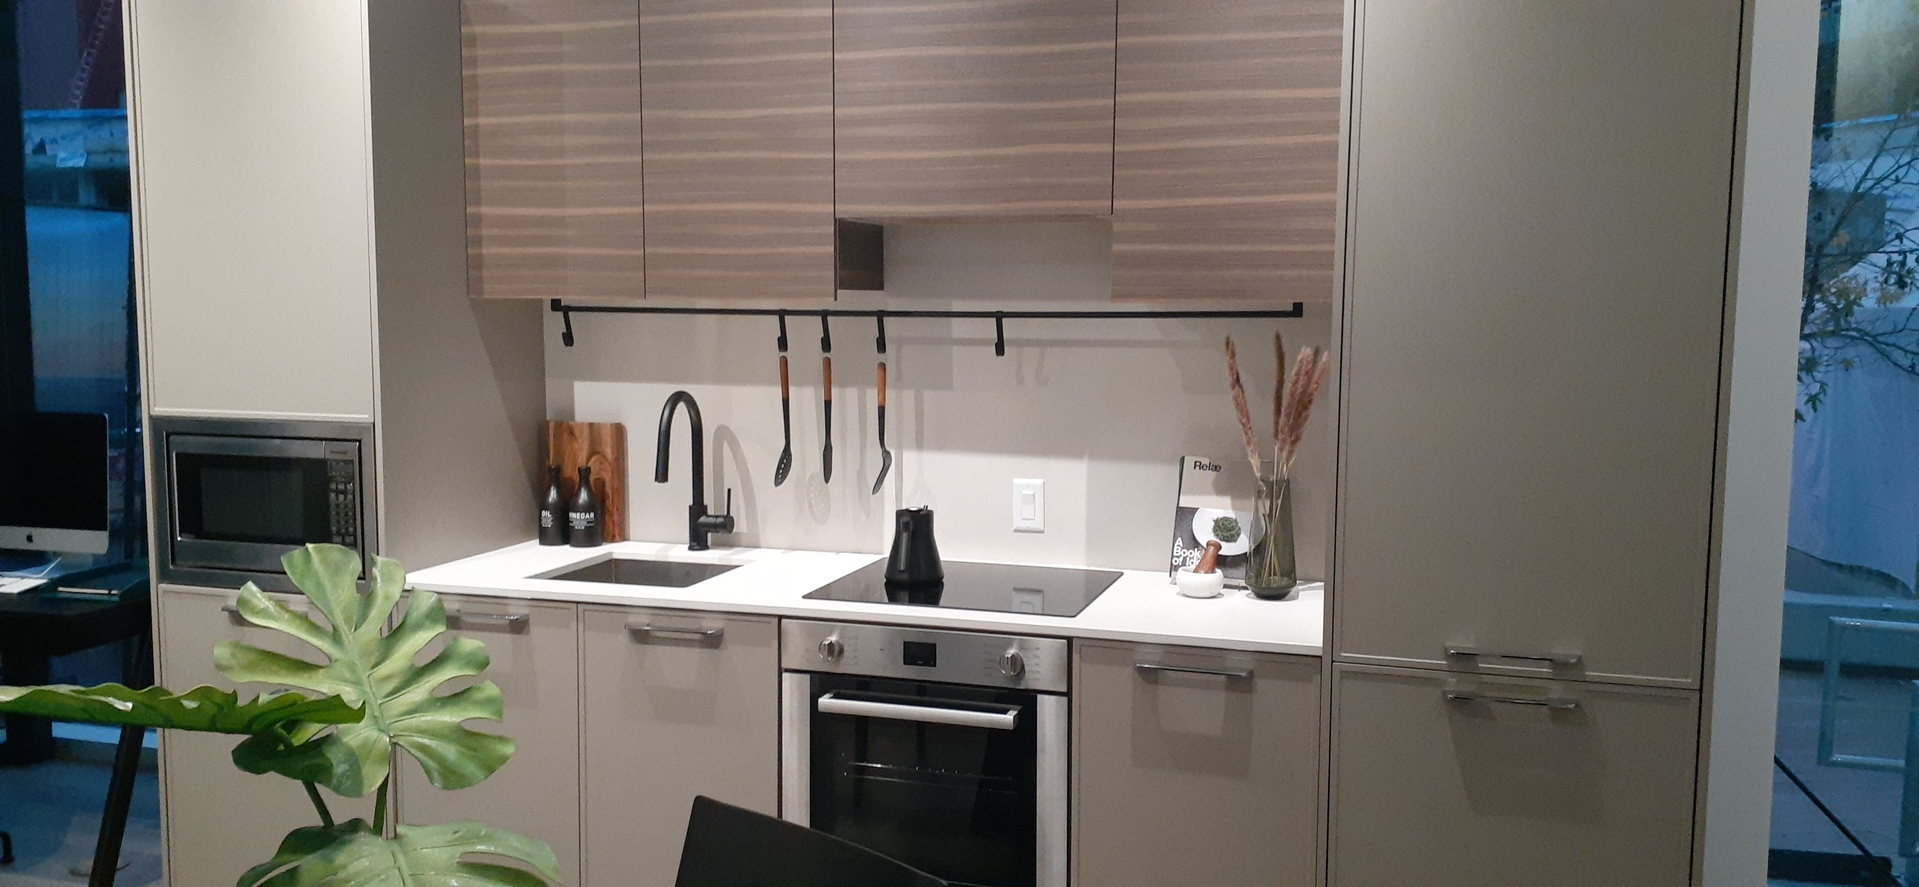 One Bedroom Kitchen at Plaza One at King George Hub (13725 George Junction, Whalley, North Surrey)